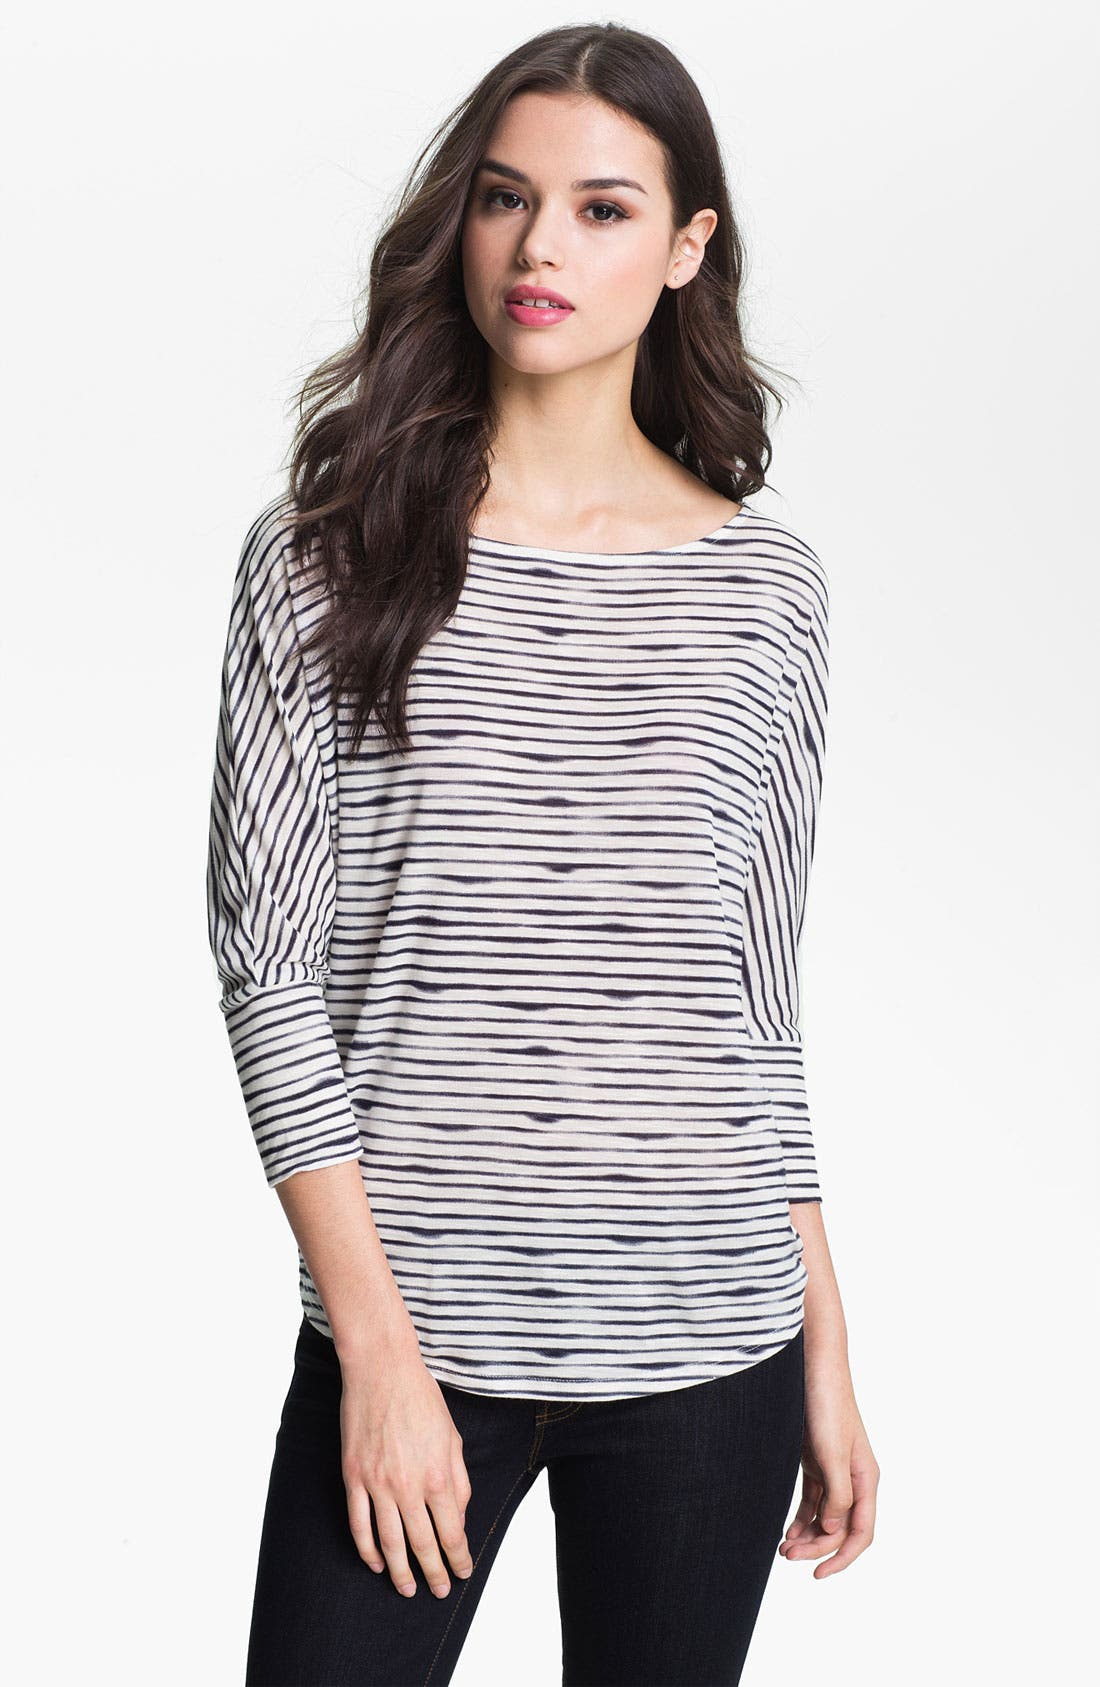 Alternate Image 1 Selected - Soft Joie 'Sagittarius' Stripe Dolman Top